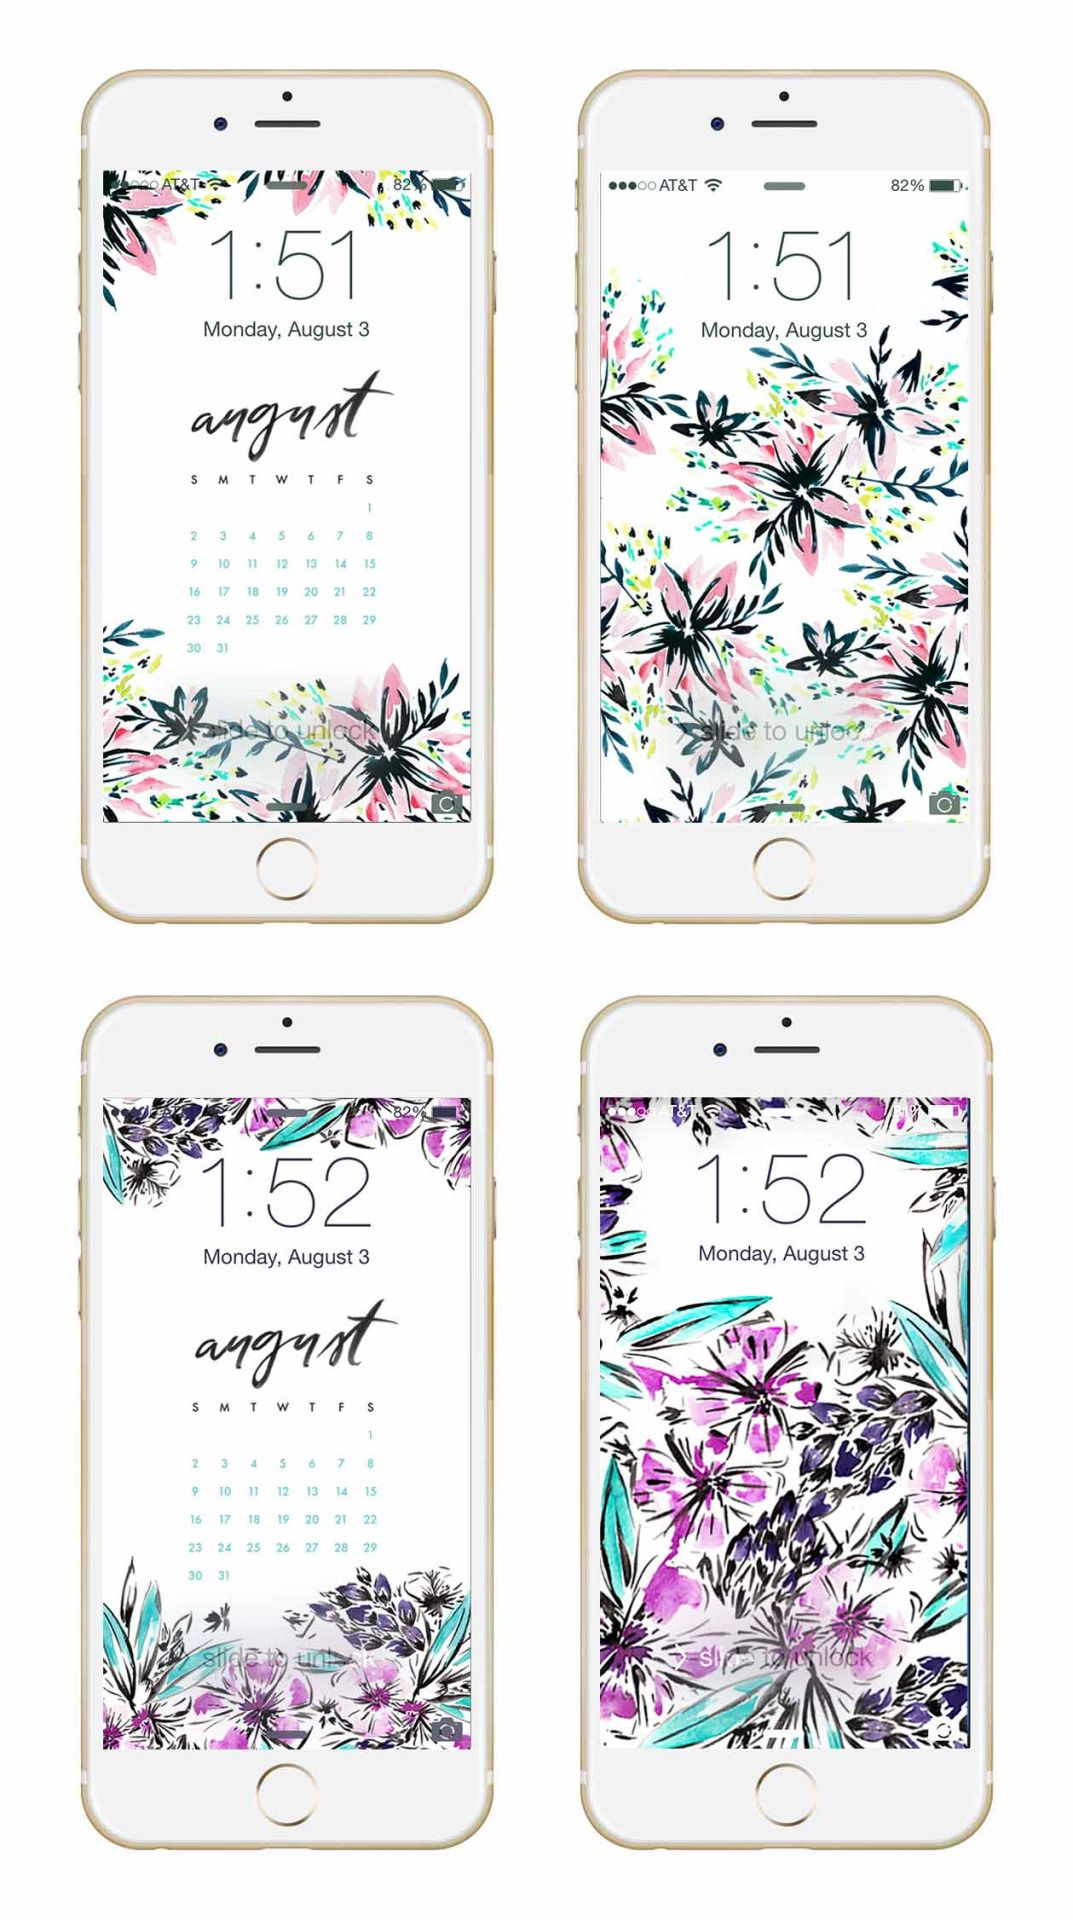 Wallpaper downloads Calendar wallpaper, Iphone wallpaper